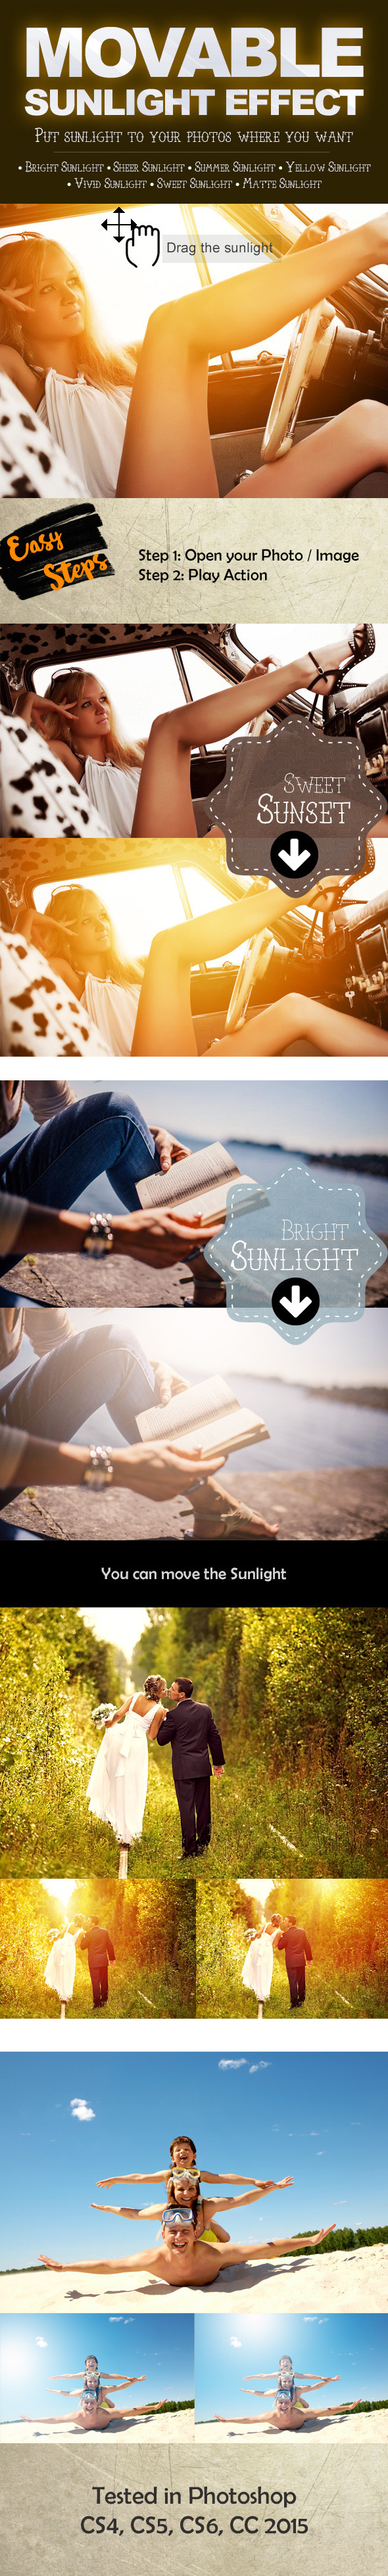 Movable Sunlight Effects Photoshop Actions - Photo Effects Actions